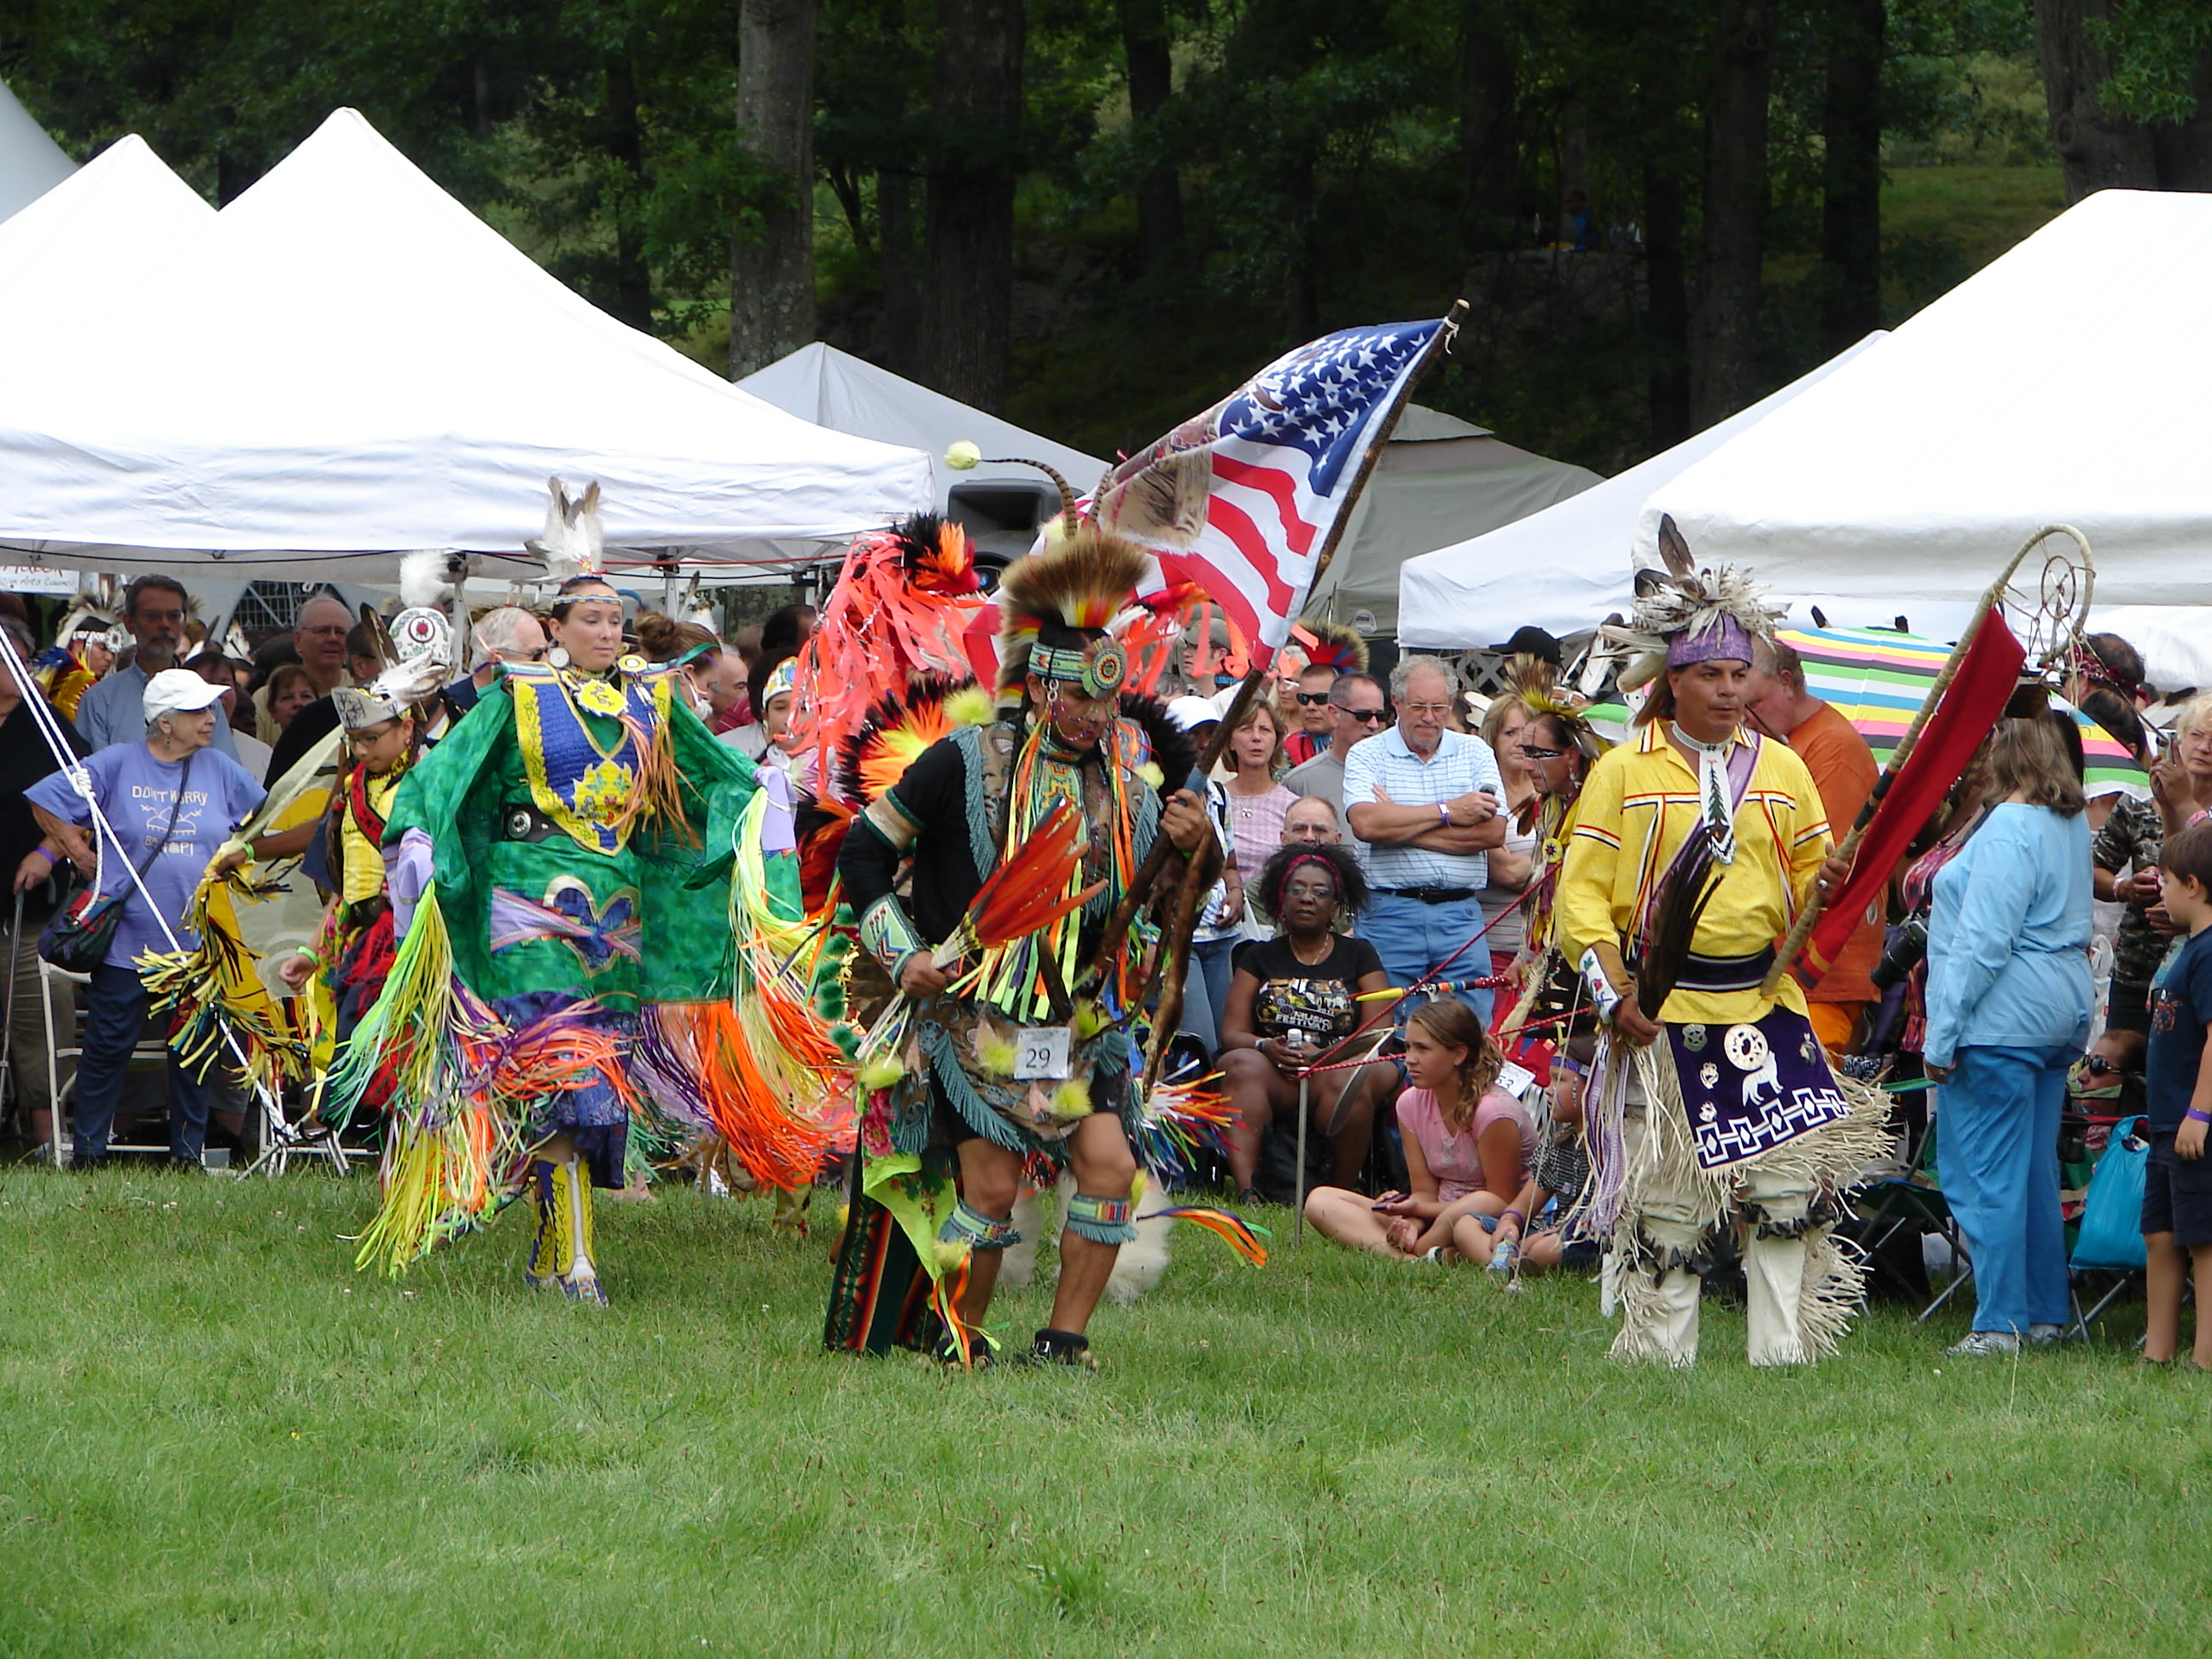 Indian Festival & Pow-Wow - Explore Gwinnett Events